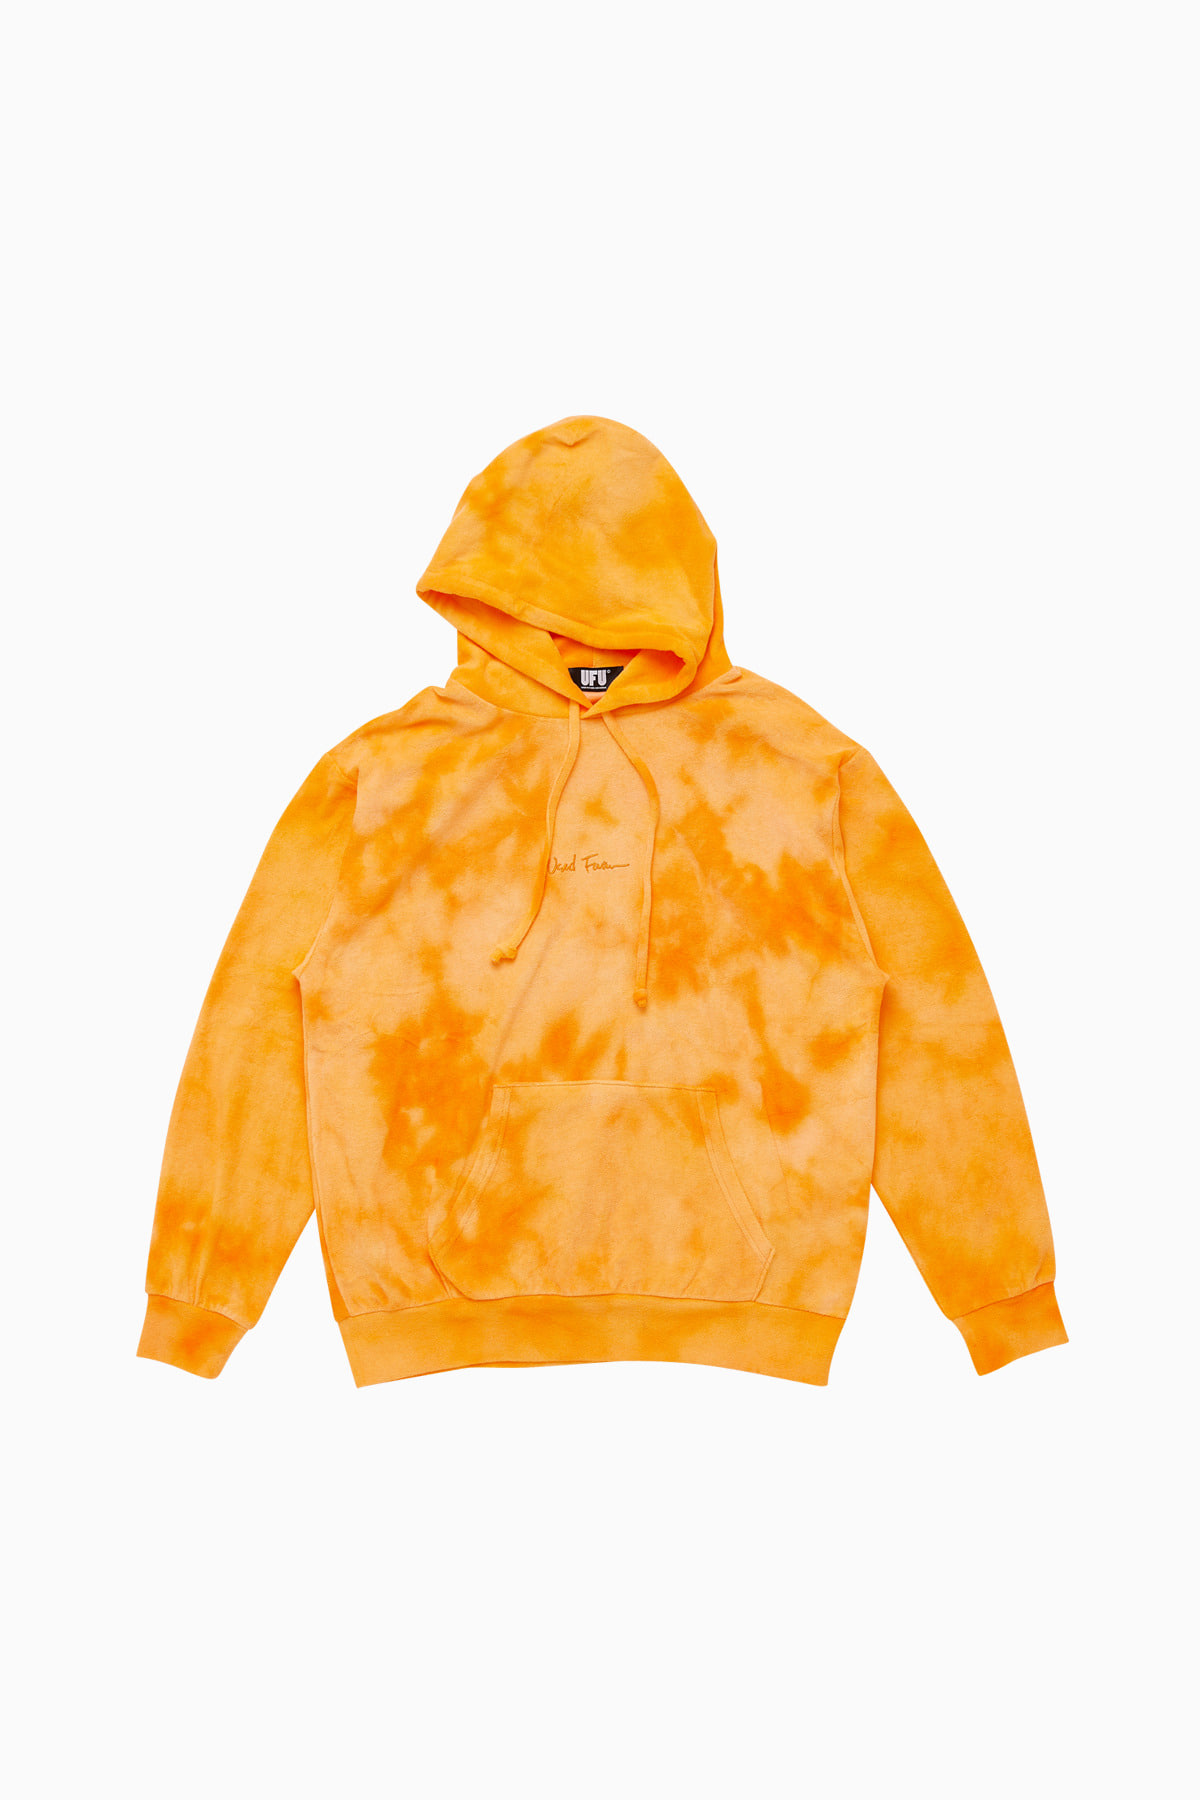 JUICY HOODIE_ORANGE